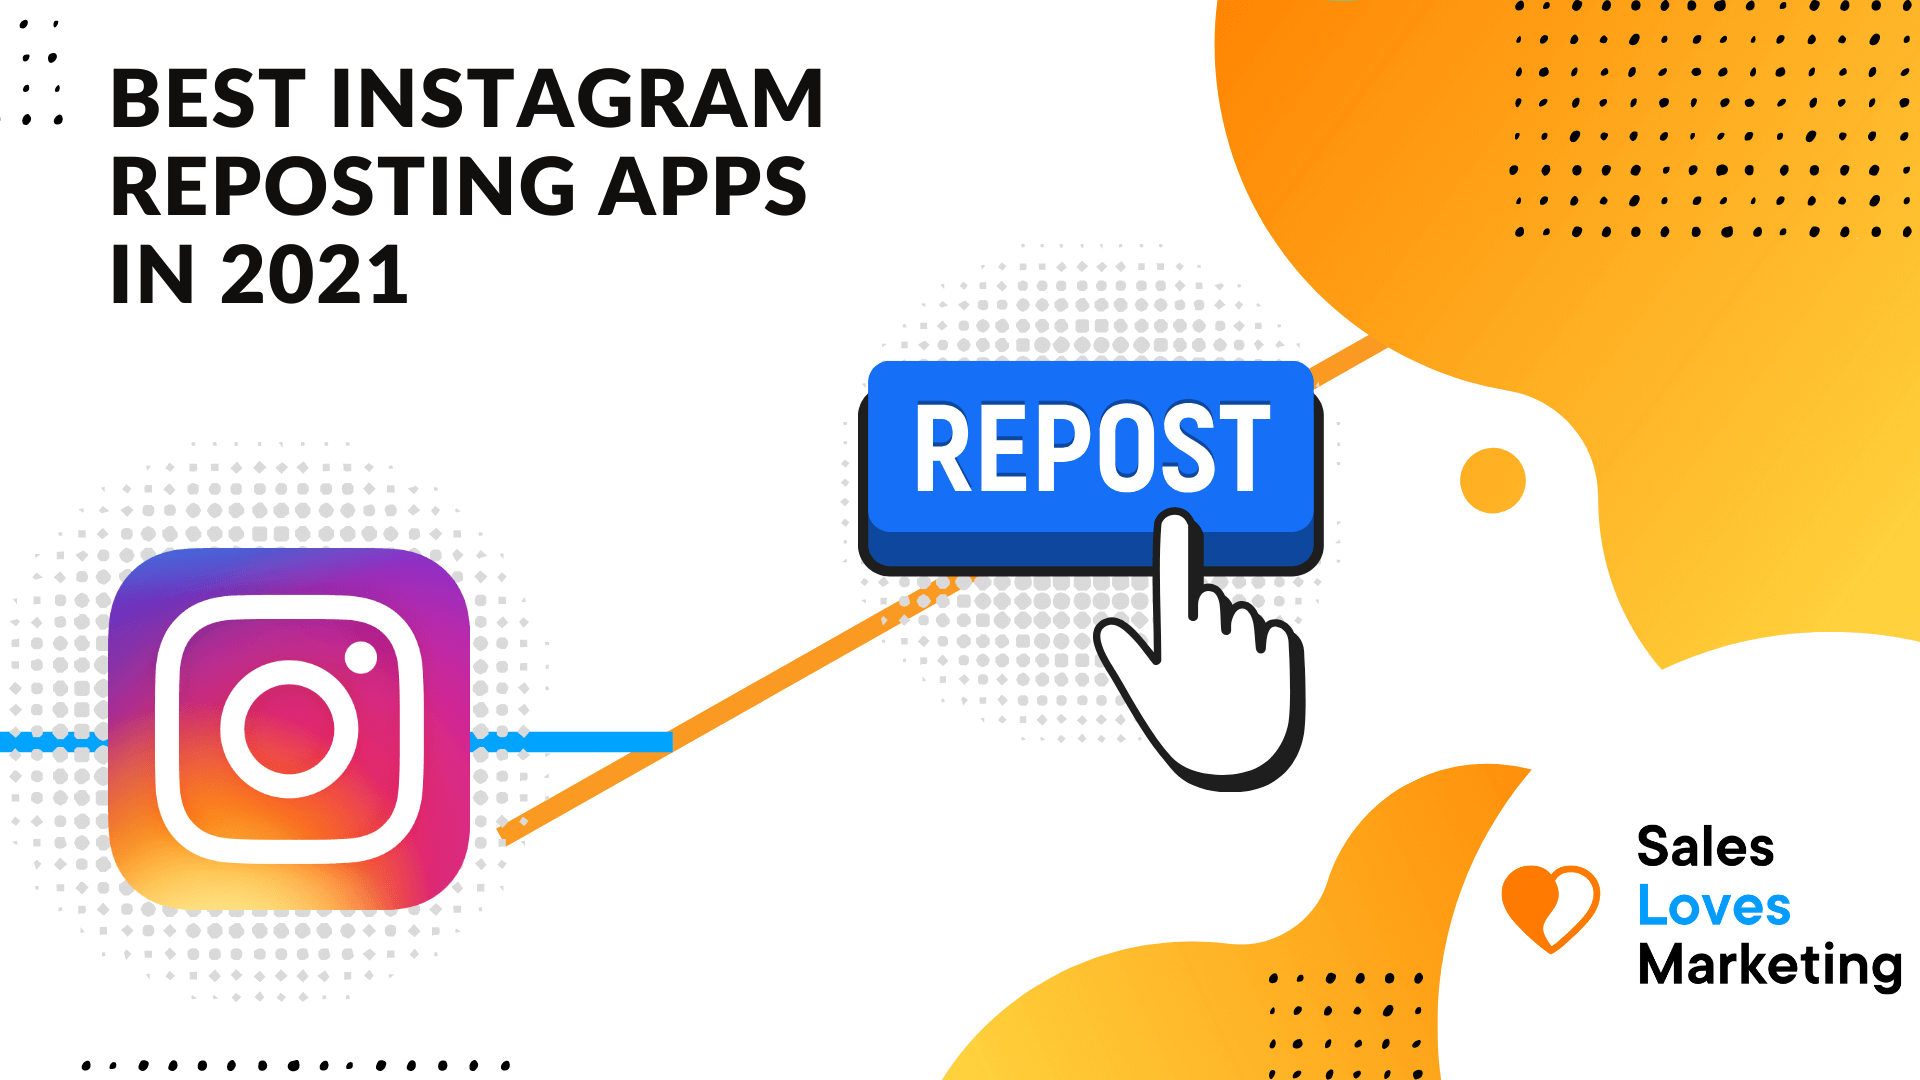 The best instagram apps to repost messages.